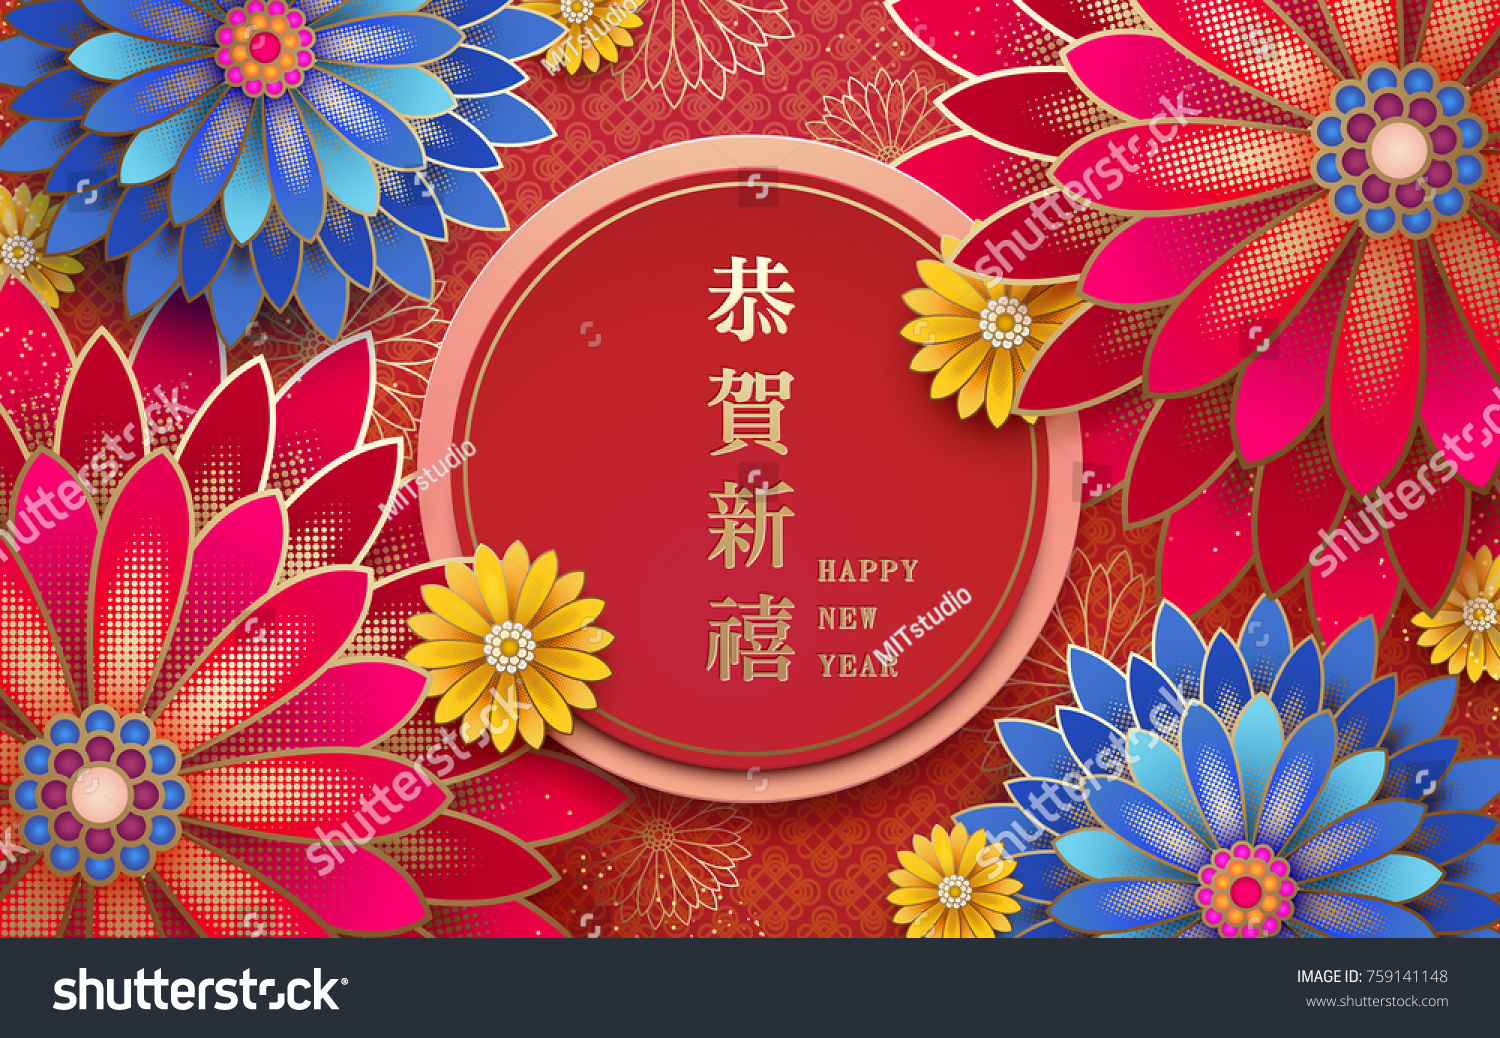 Happy New Year Chinese Words Flowers Vector de stock (libre